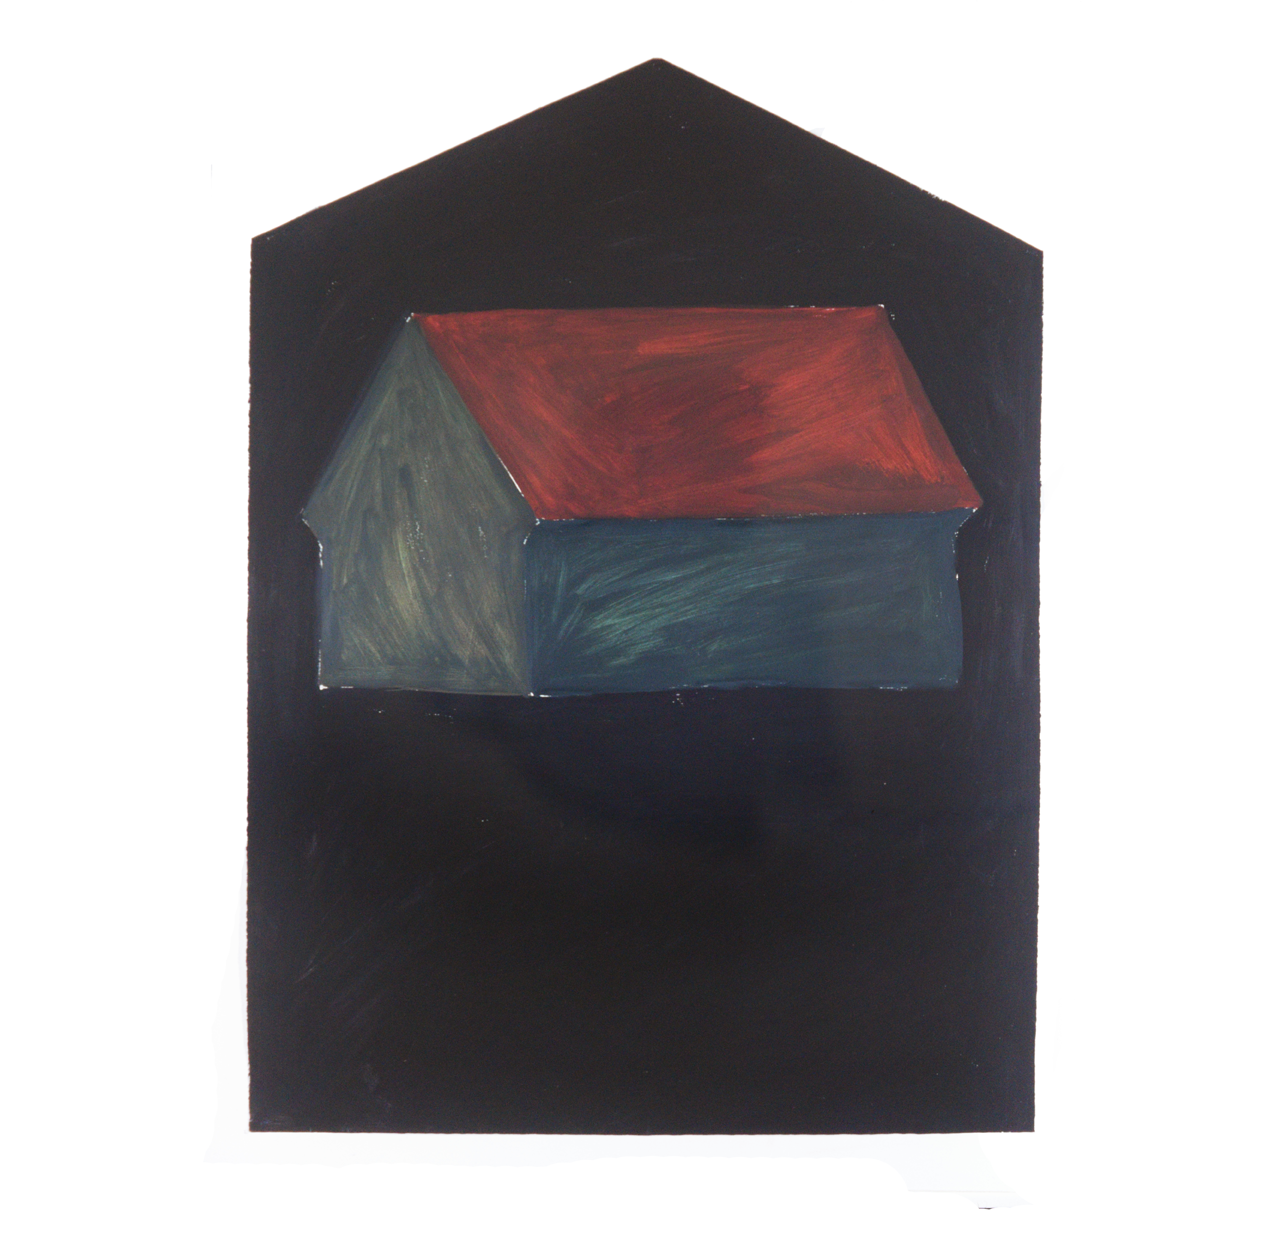 """Single House, mat rectangular"""" 1981, oil on paper, 106 x 79 cm - Collection Tsagaris/Hilberry, Detroit - Photo Hadler/Stuhr"